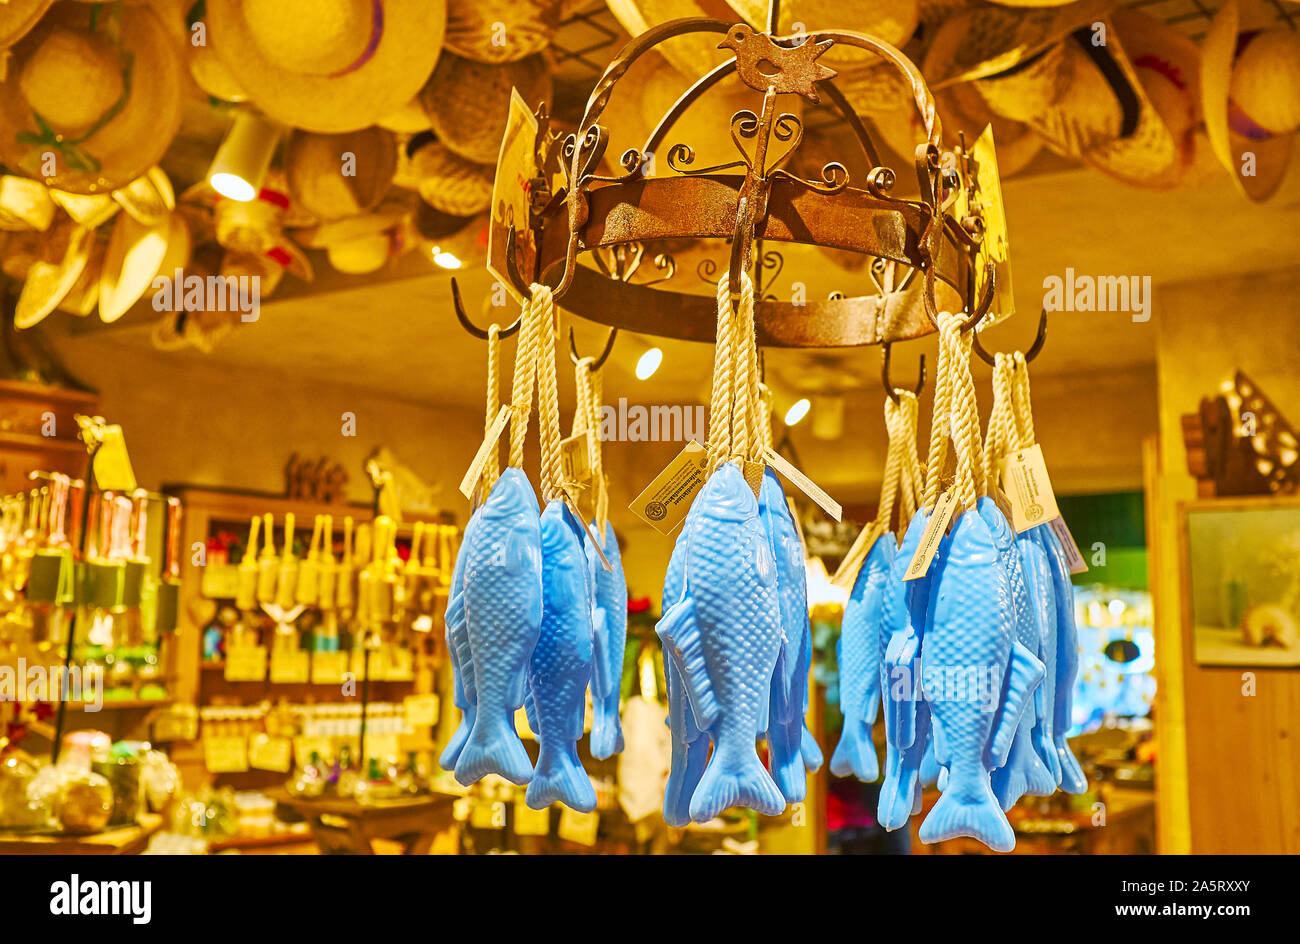 HALLSTATT, AUSTRIA - FEBRUARY 25, 2019: The blue fish shaped soap is hanging on the vintage round rack in old Salzkontor store, famous for high qualit Stock Photo